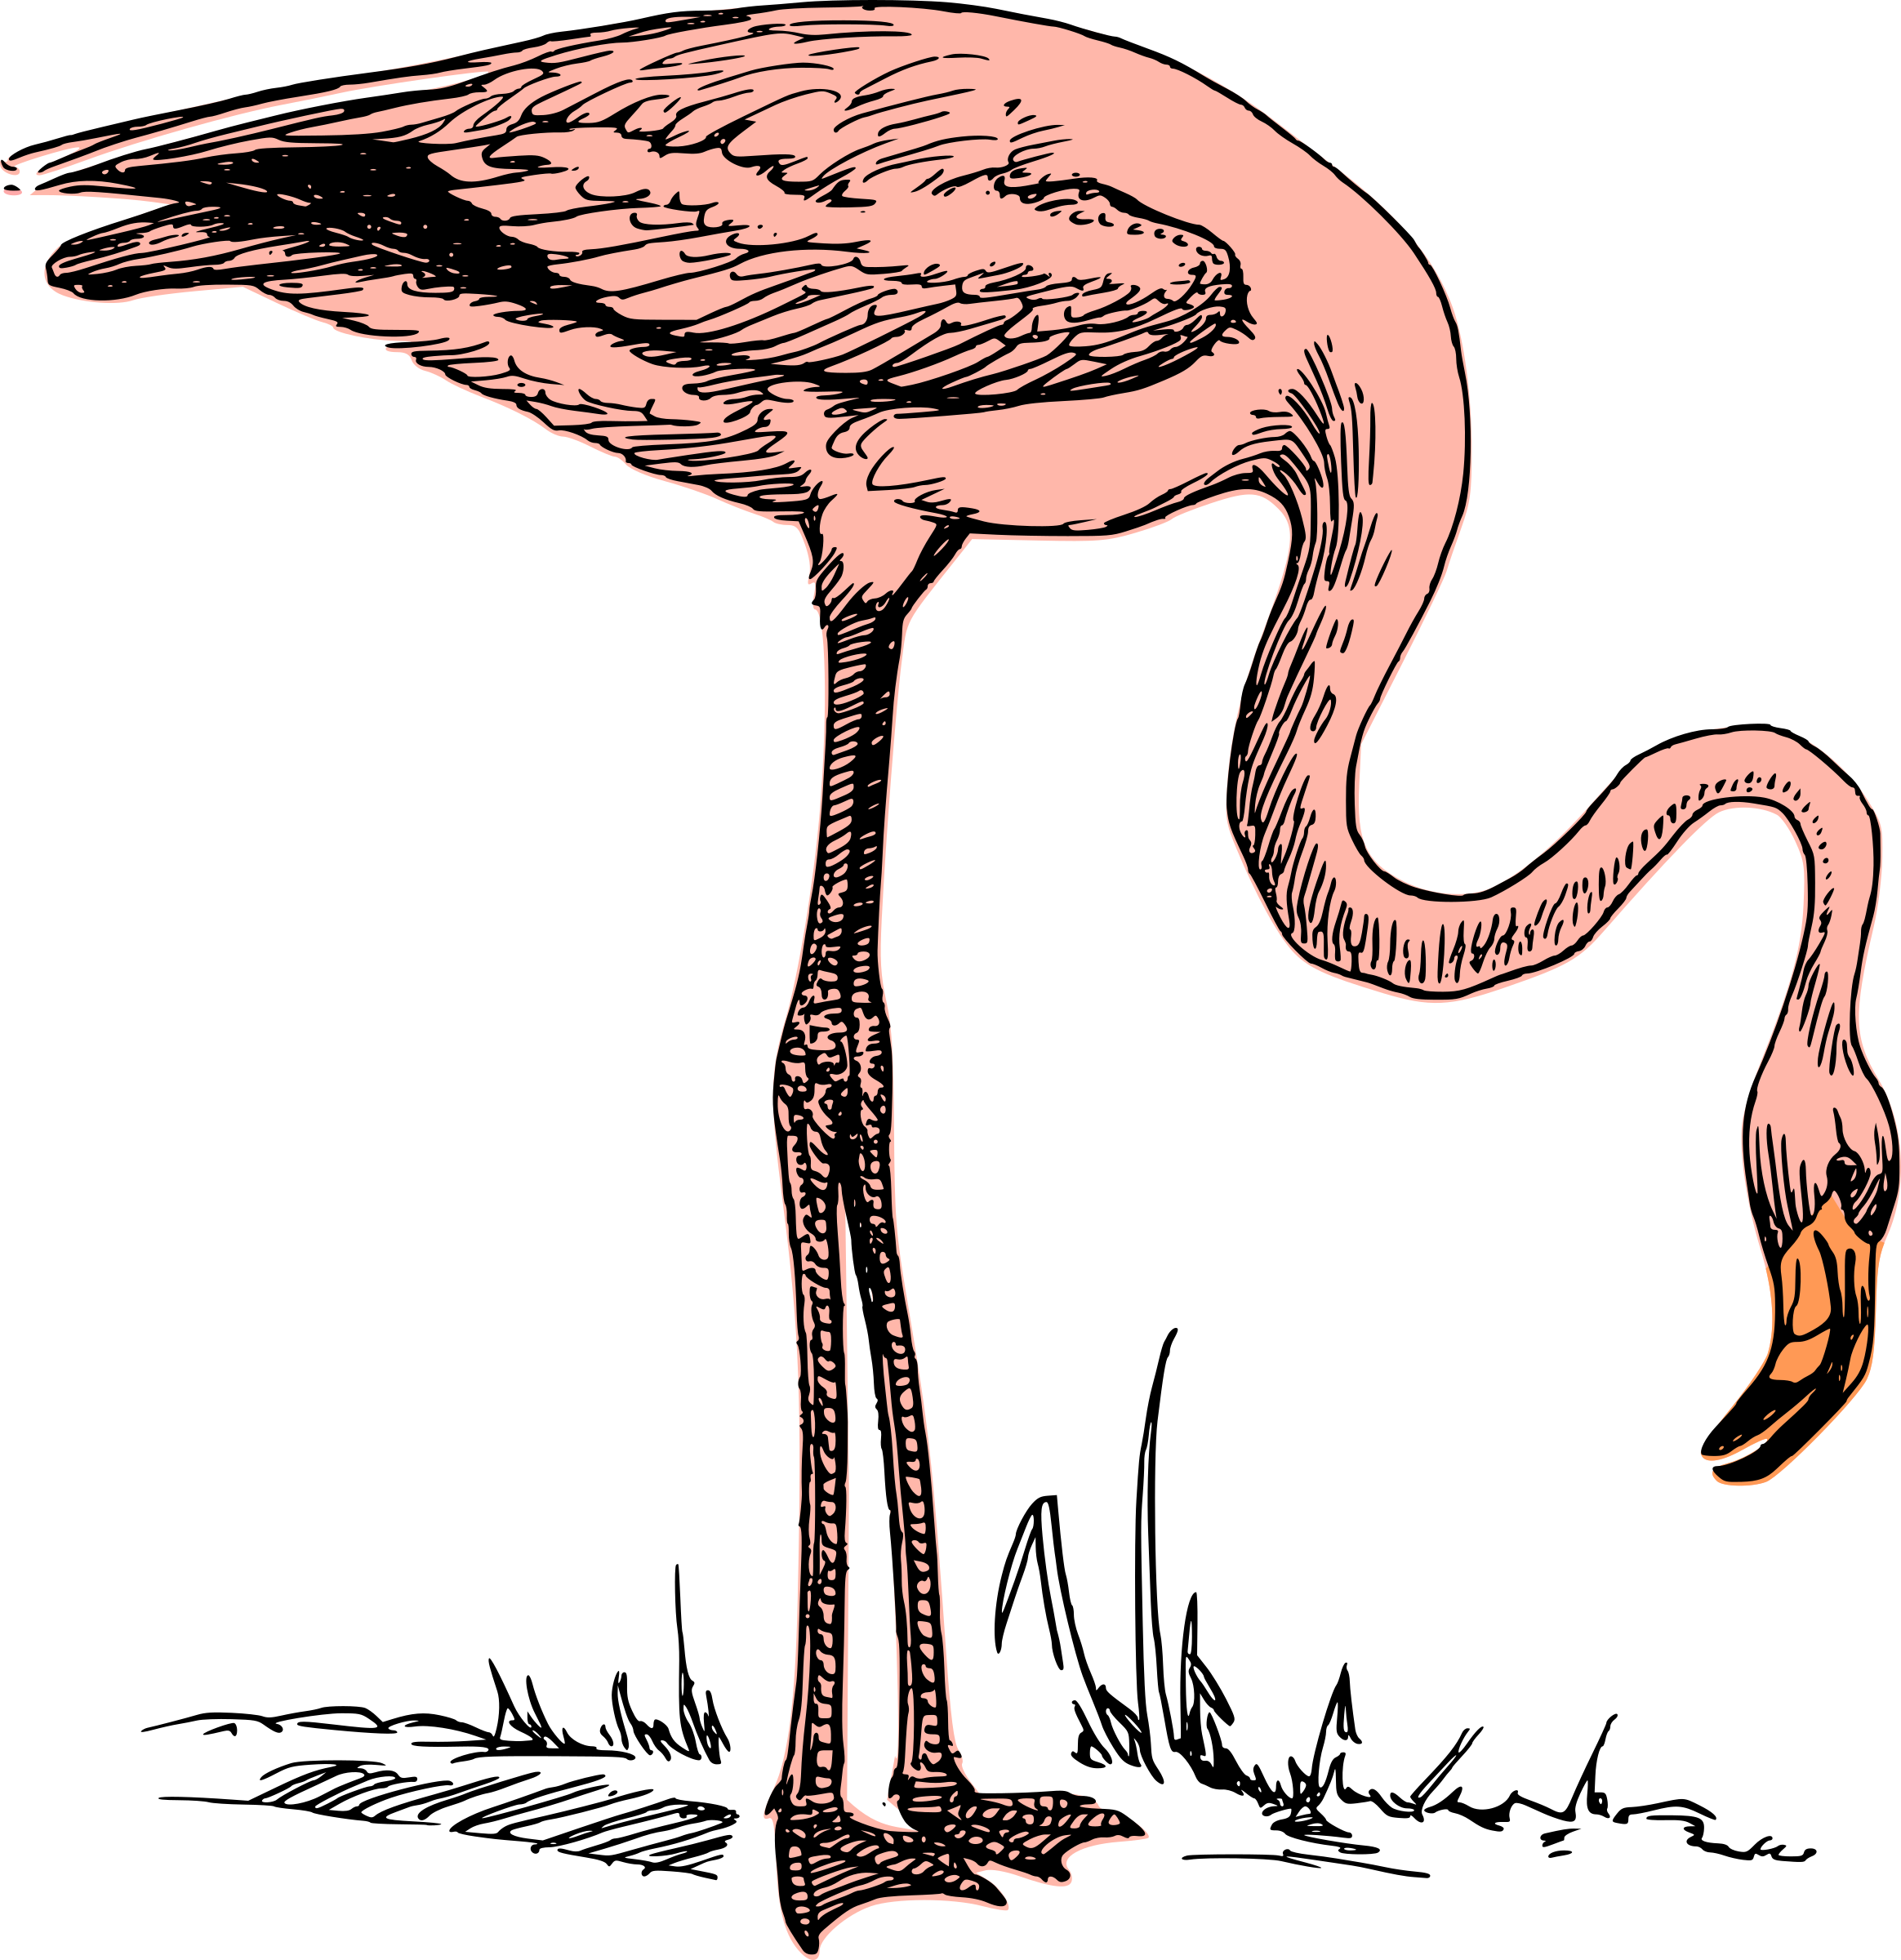 Pink flamingo by anarres